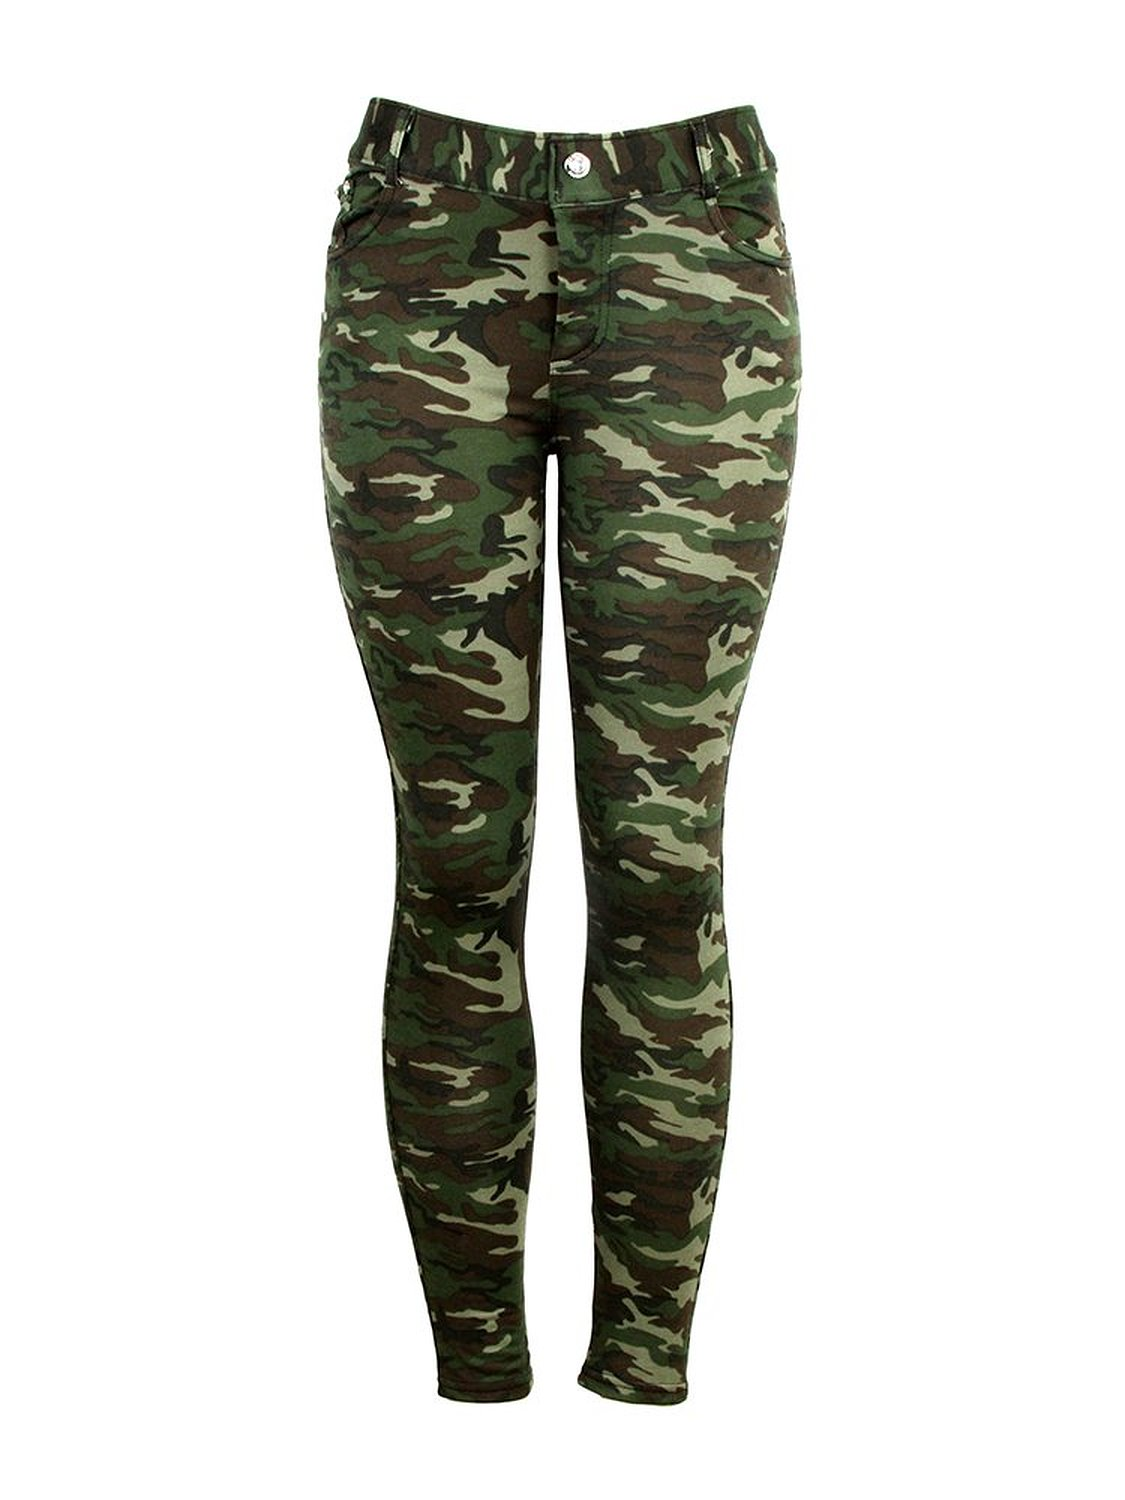 Womens Five Pocket Camouflage Camo Fashion Pants Jeggings (Small/Medium) at Amazon Women's Clothing store: